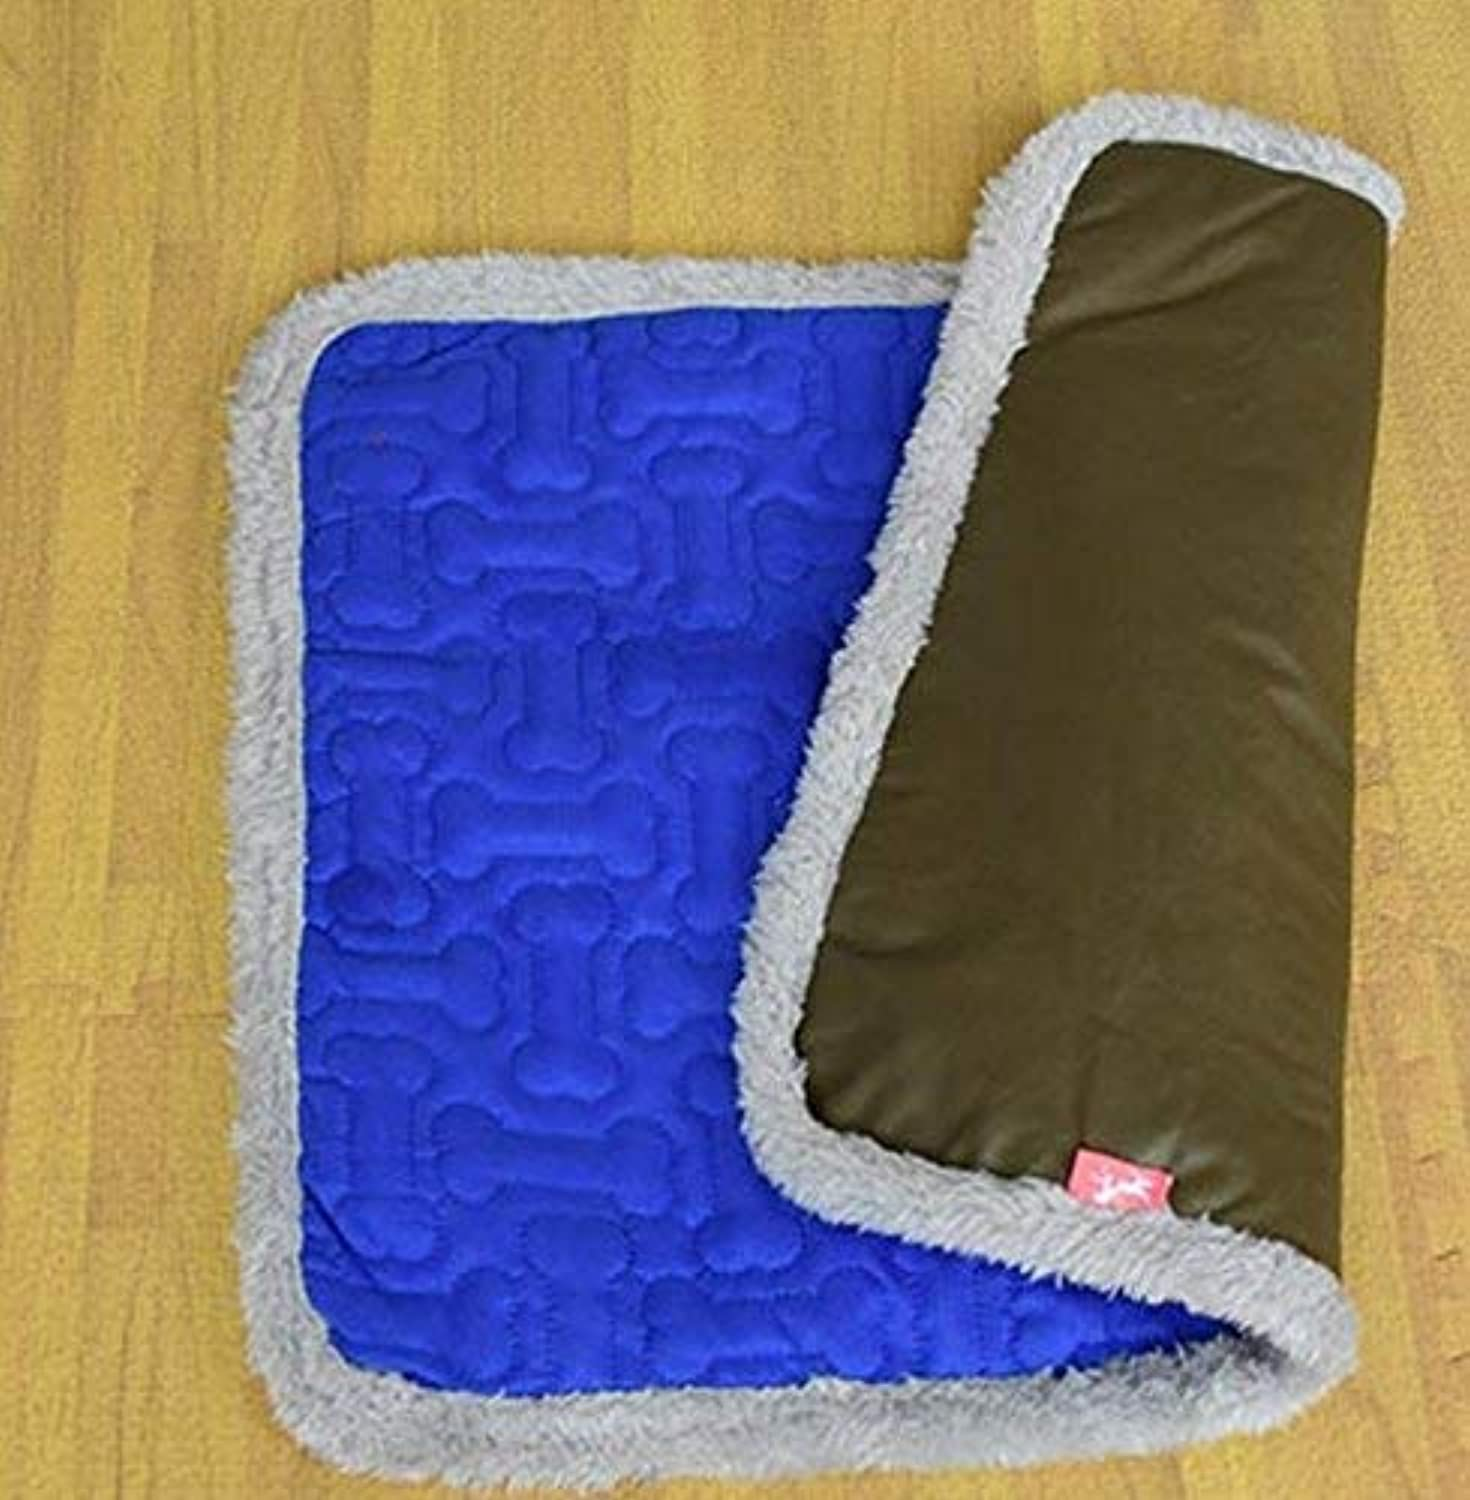 YQSMB Dual Use Pet Sleeping Mat Dog Cats Puppy Pad Cushion Bed(bluee,M) for Cat Dog